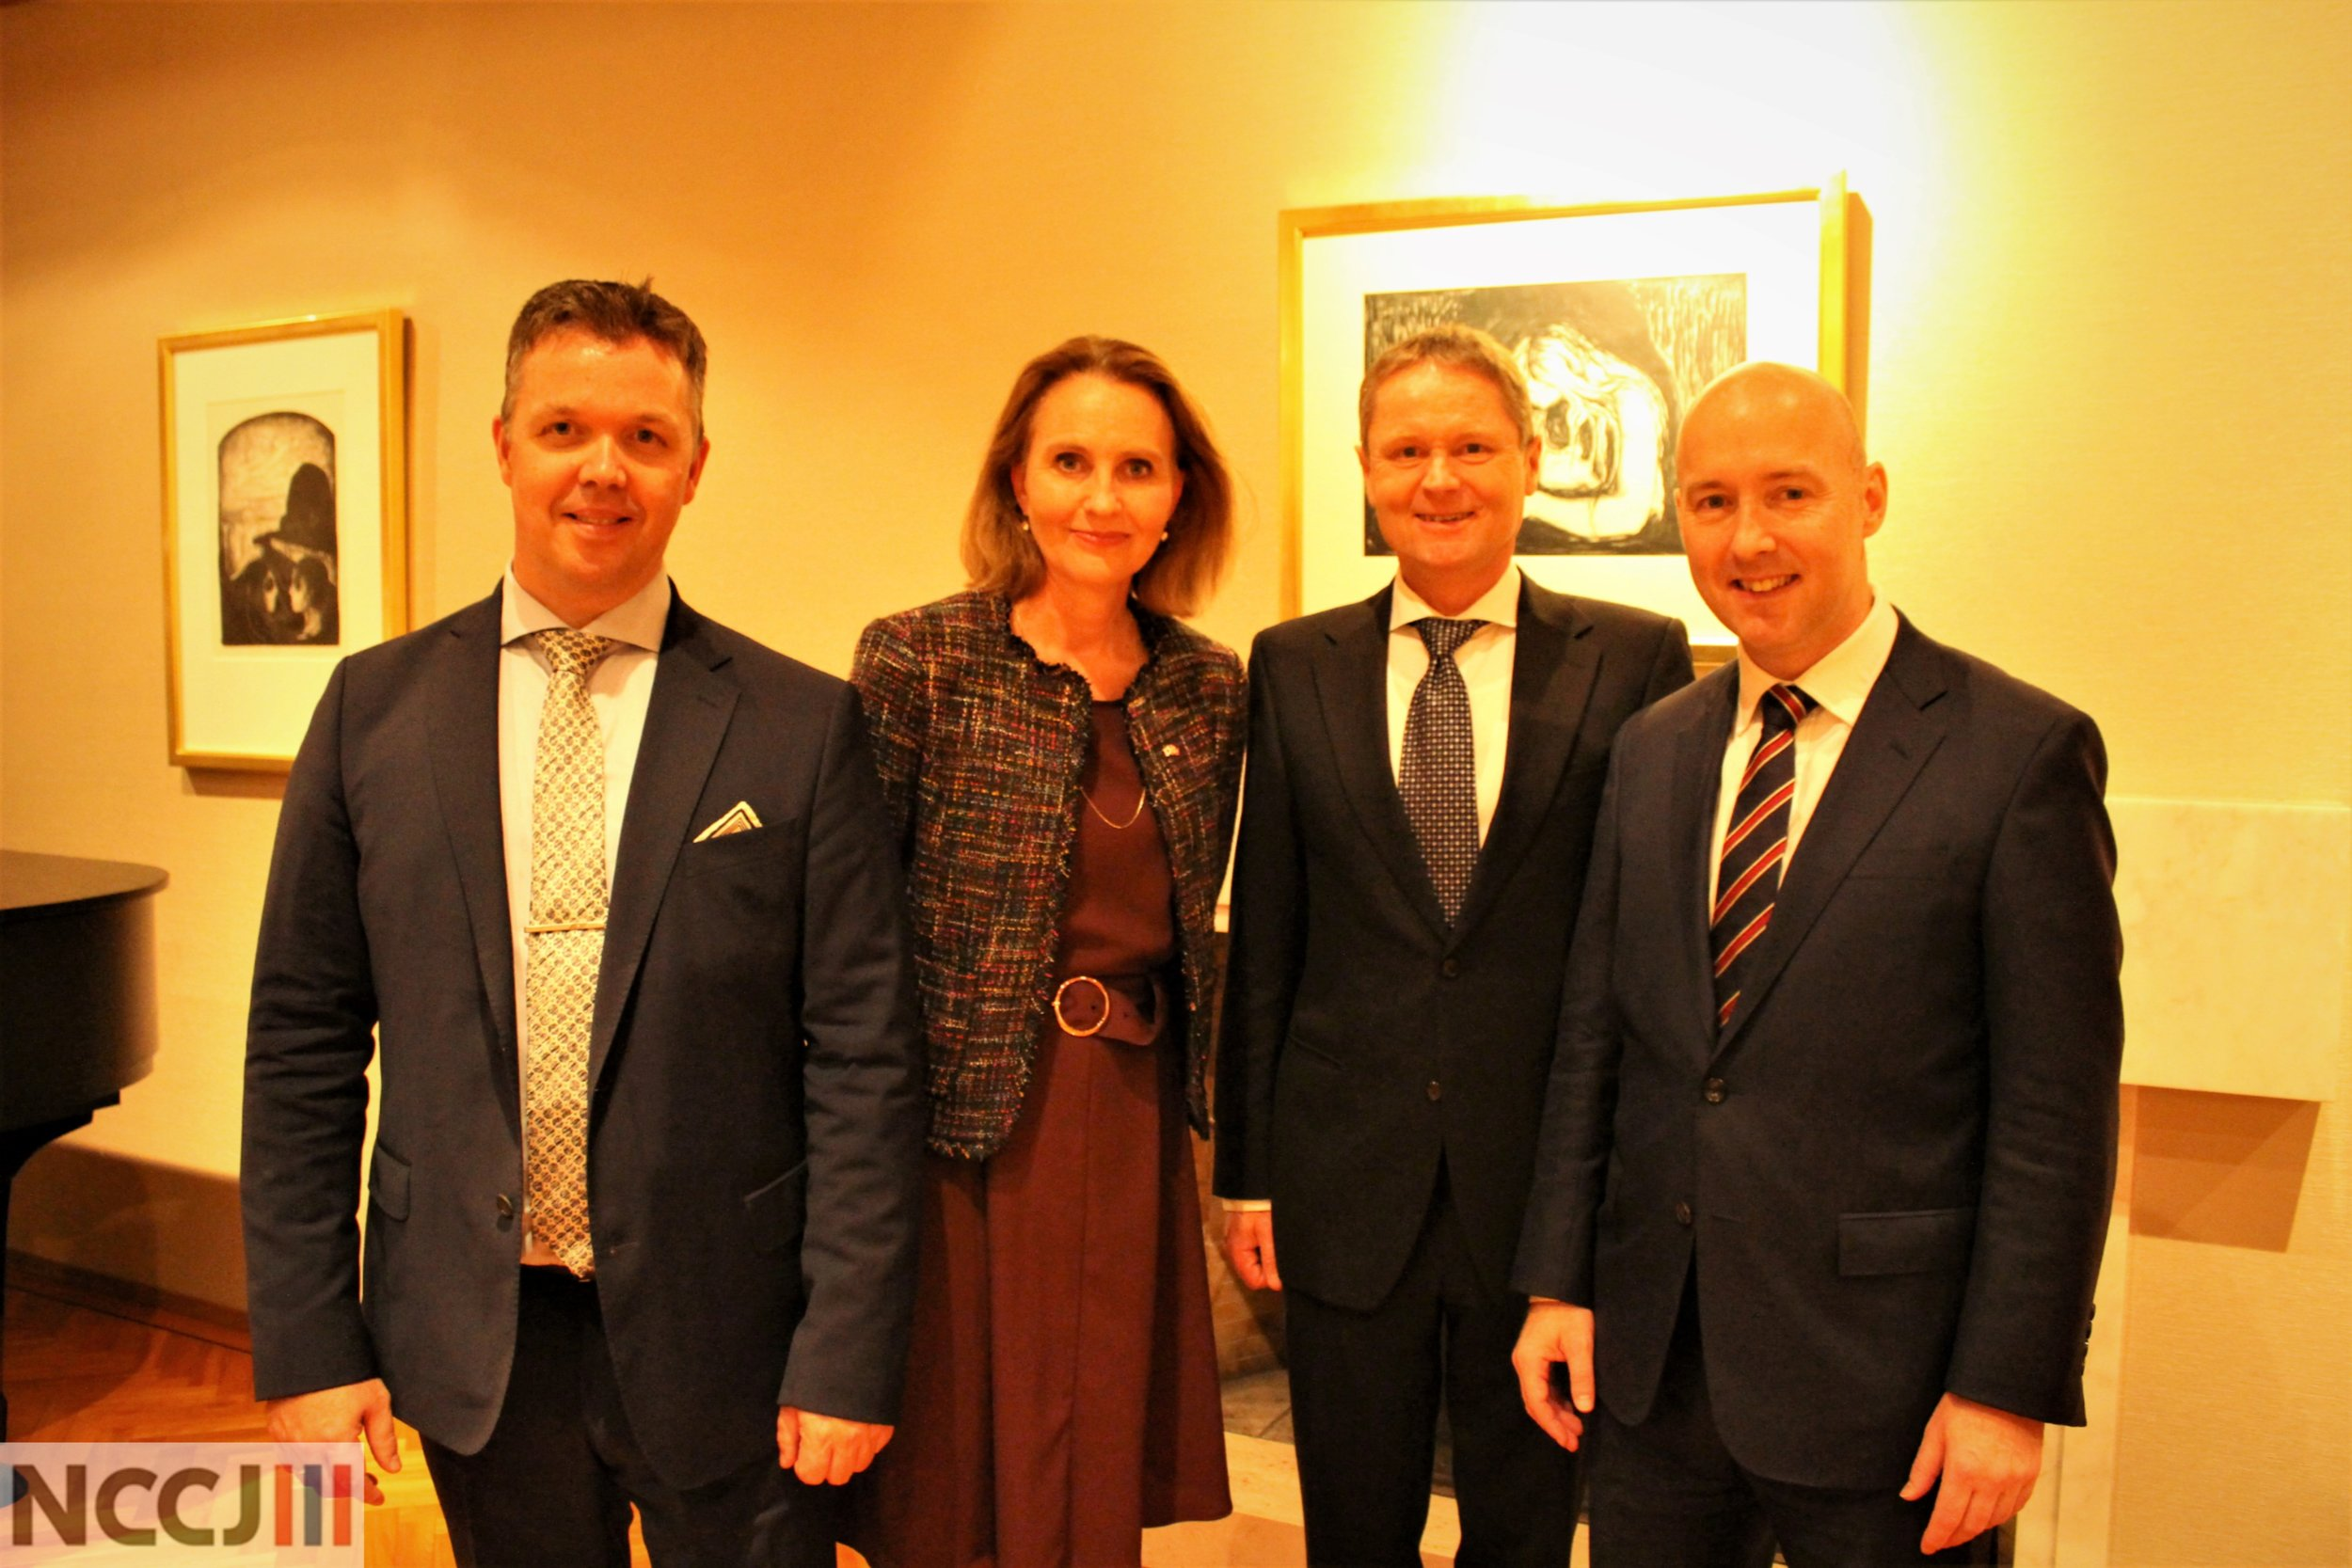 From the left: Chief Operating Officer Alf-Christian Dybdahl, Ambassador Signe Brudeset, VP Director Sales Marketing and Services Tor Hartvig Bryne and President of Laerdal Medical Japan Svend Haakon Kristensen.